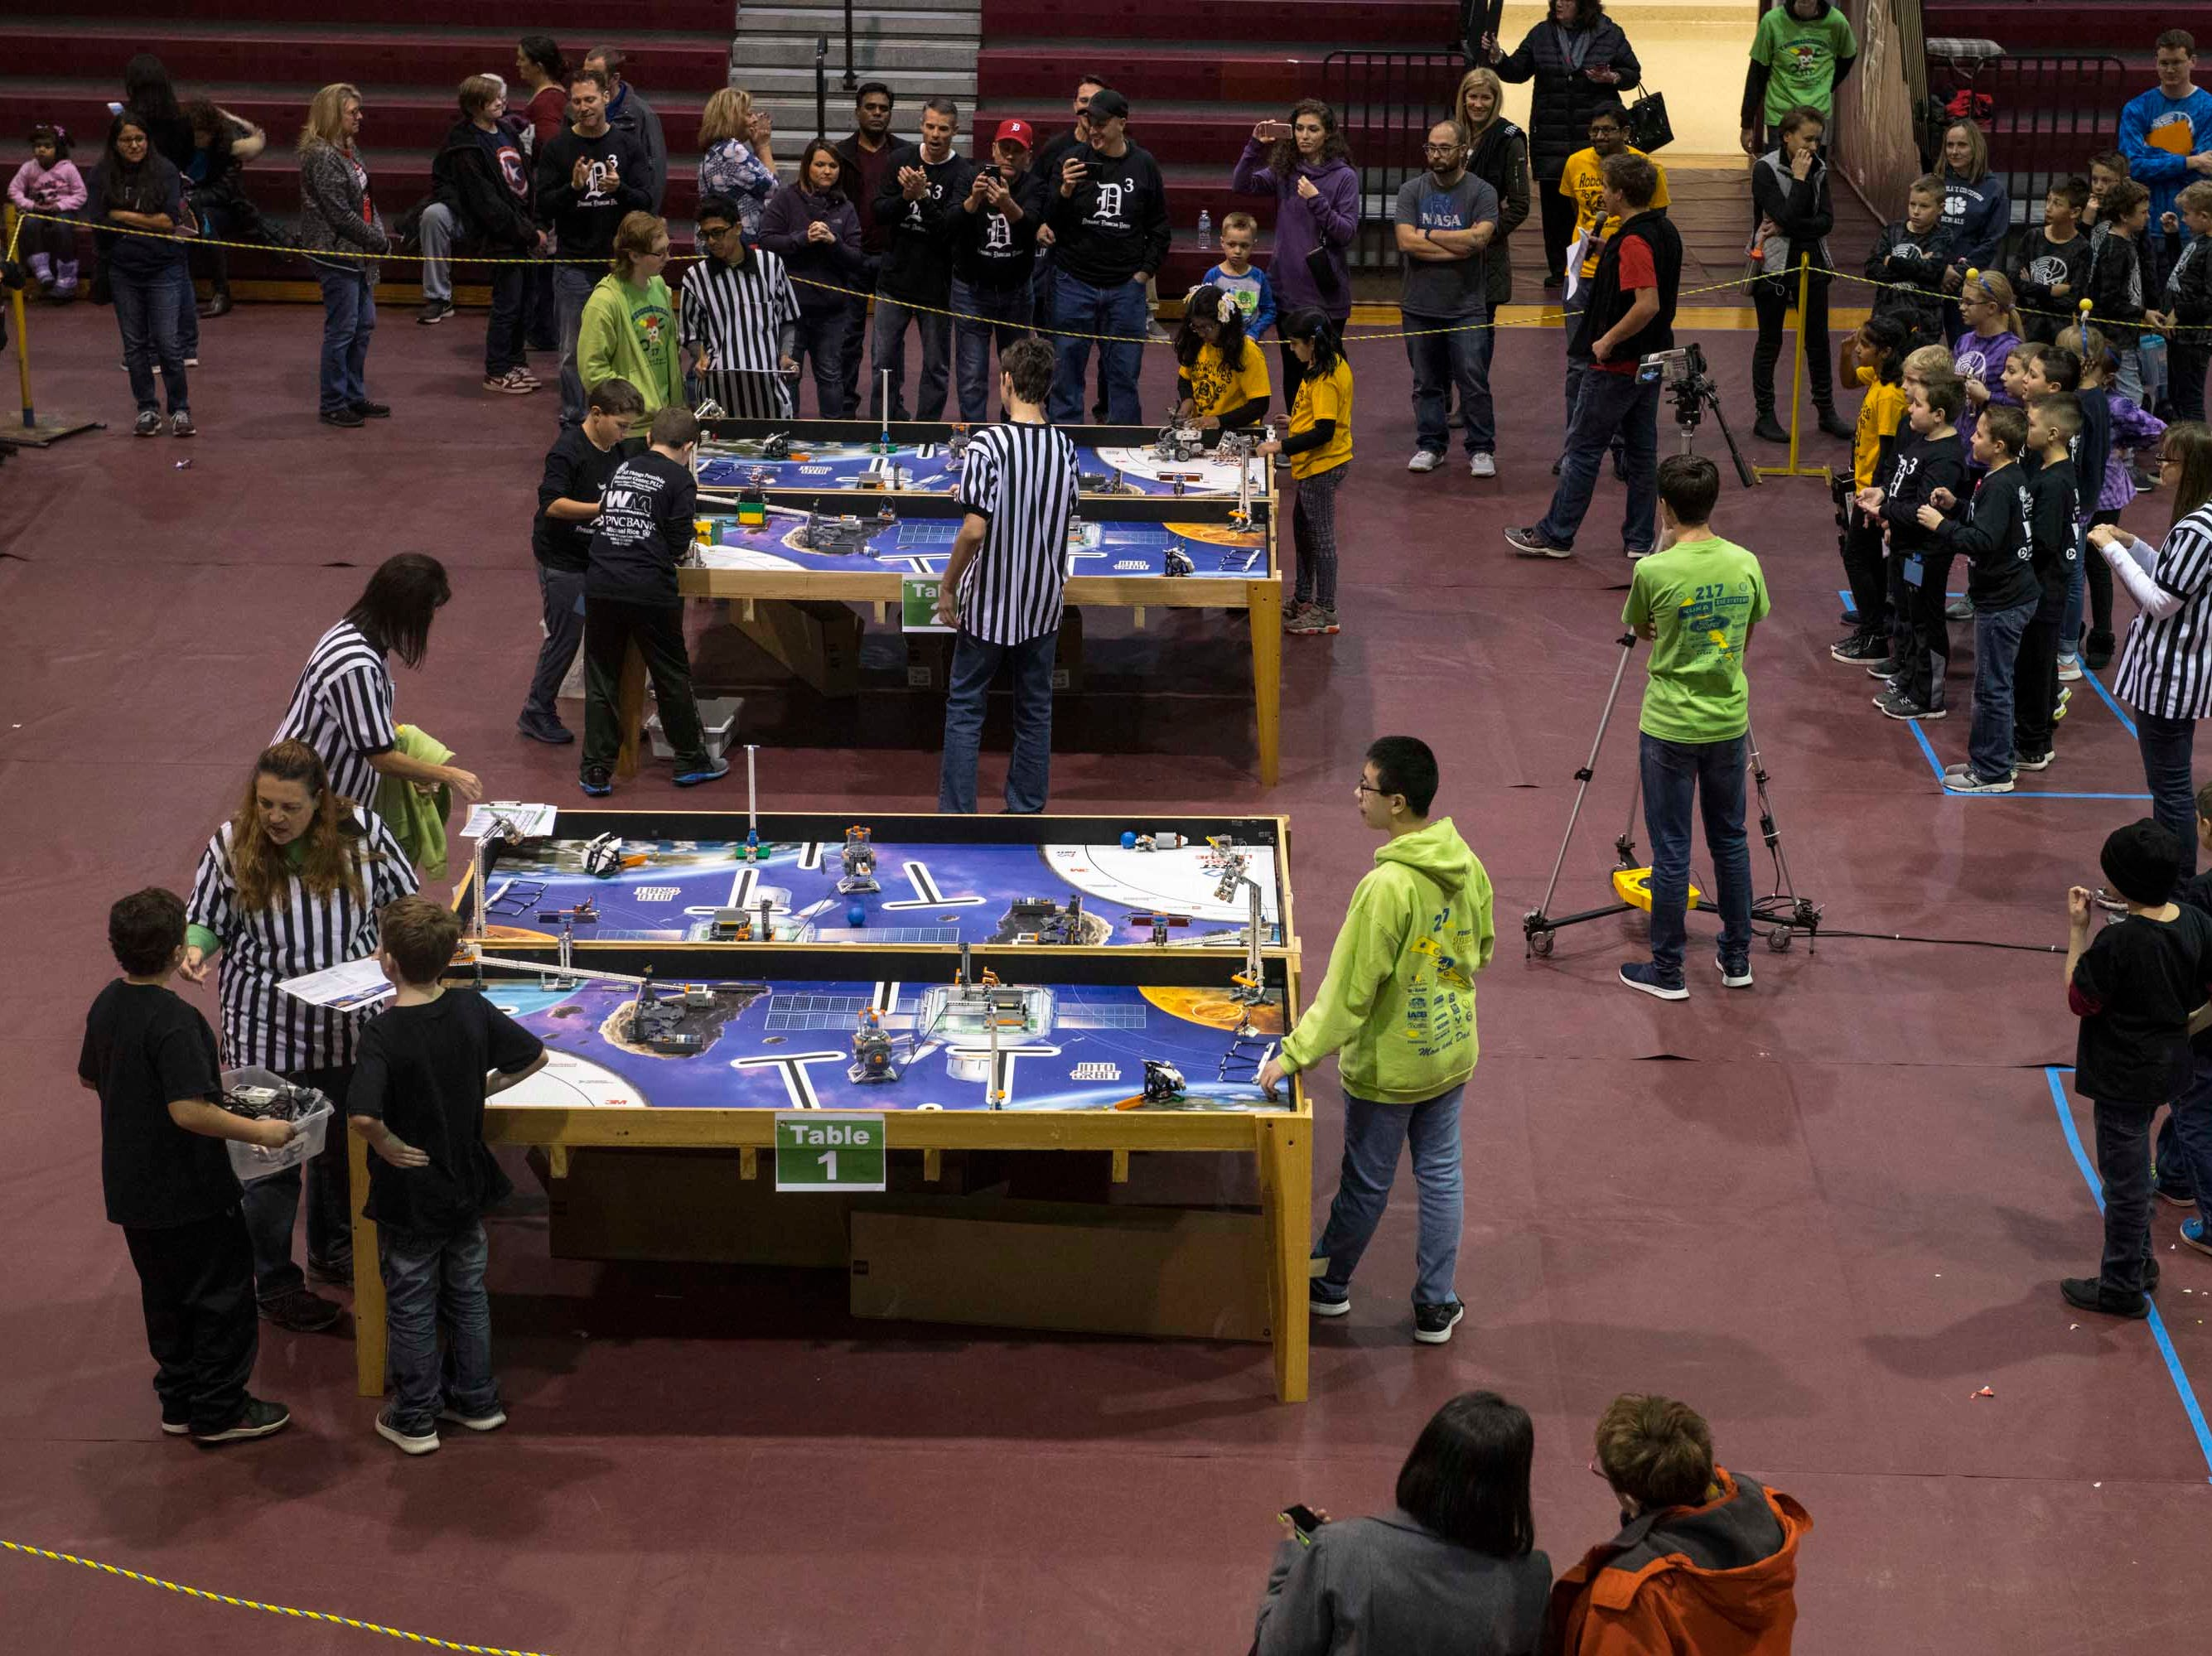 Teams come together with their LEGO robots as coaches, parents, and fans watch from the sidelines.